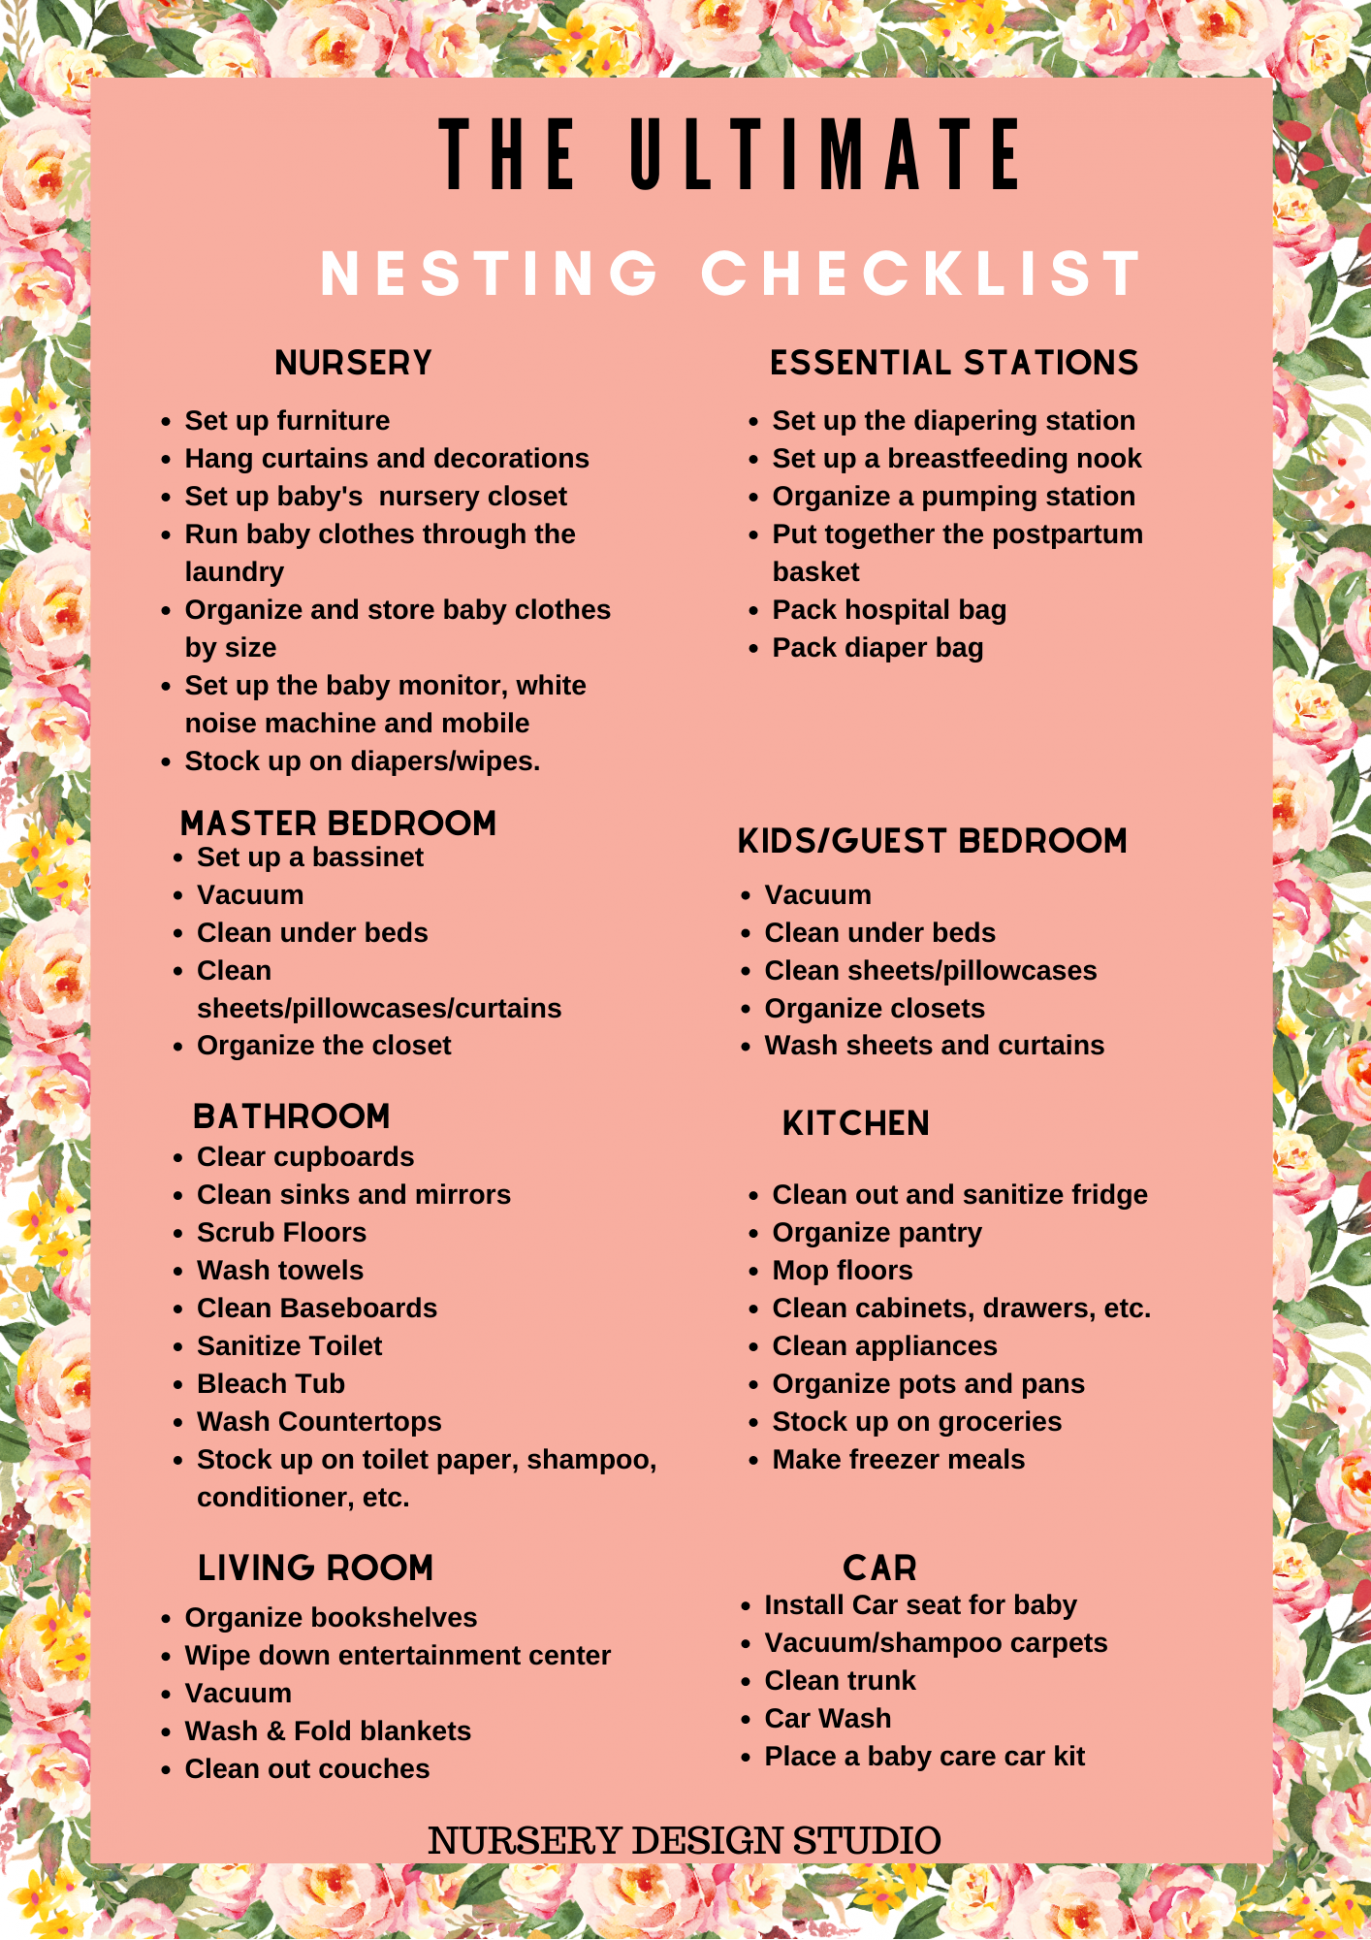 THE ULTIMATE NESTING CHECKLIST FOR NESTING MOMS AND PRINTABLE  - Baby Room Checklist